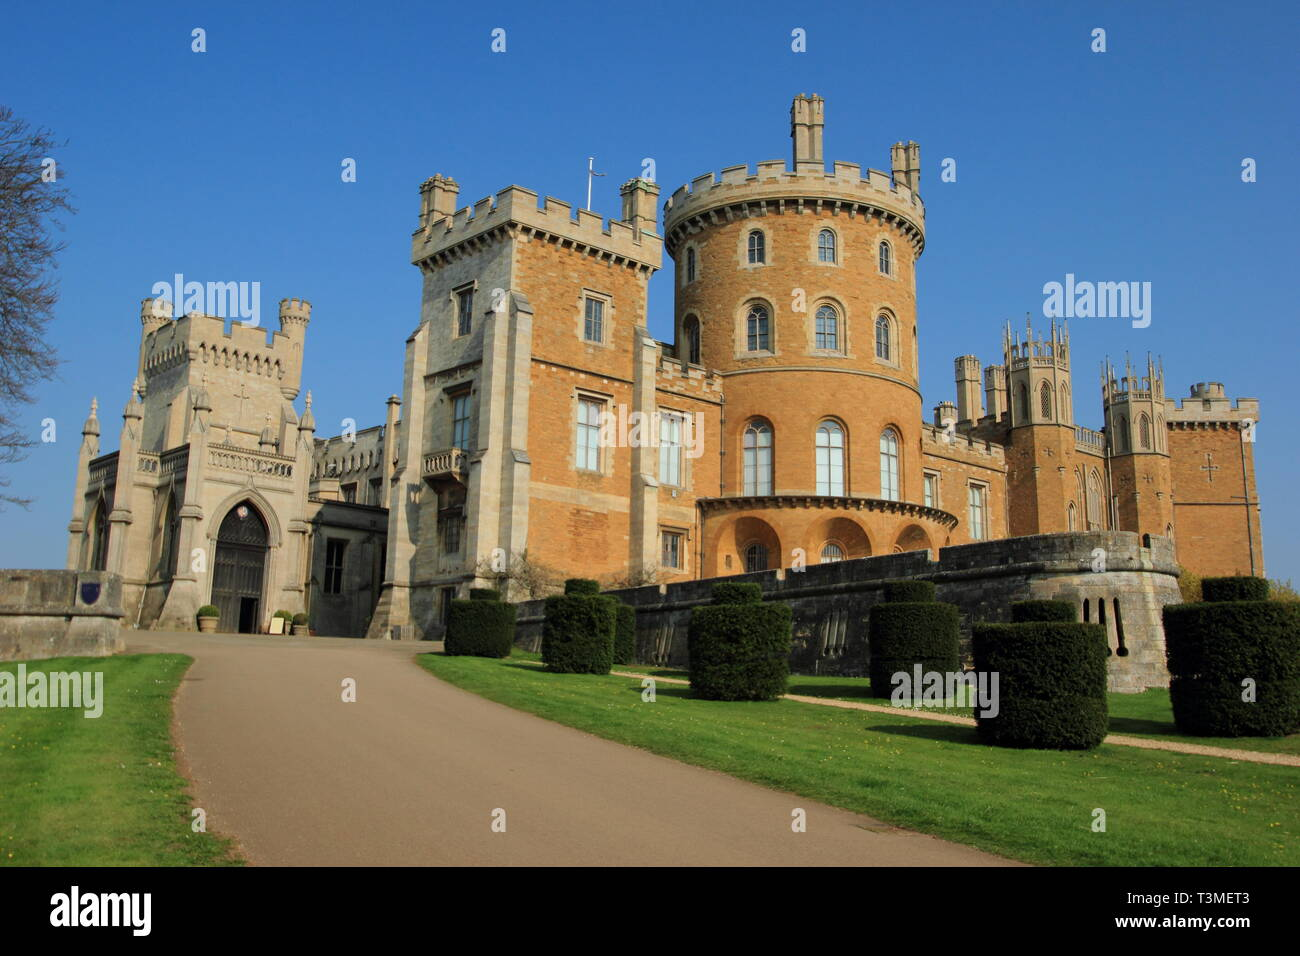 Belvoir Castle, seat of the Duke of Rutland, Leicestershire, England, UK - spring Stock Photo